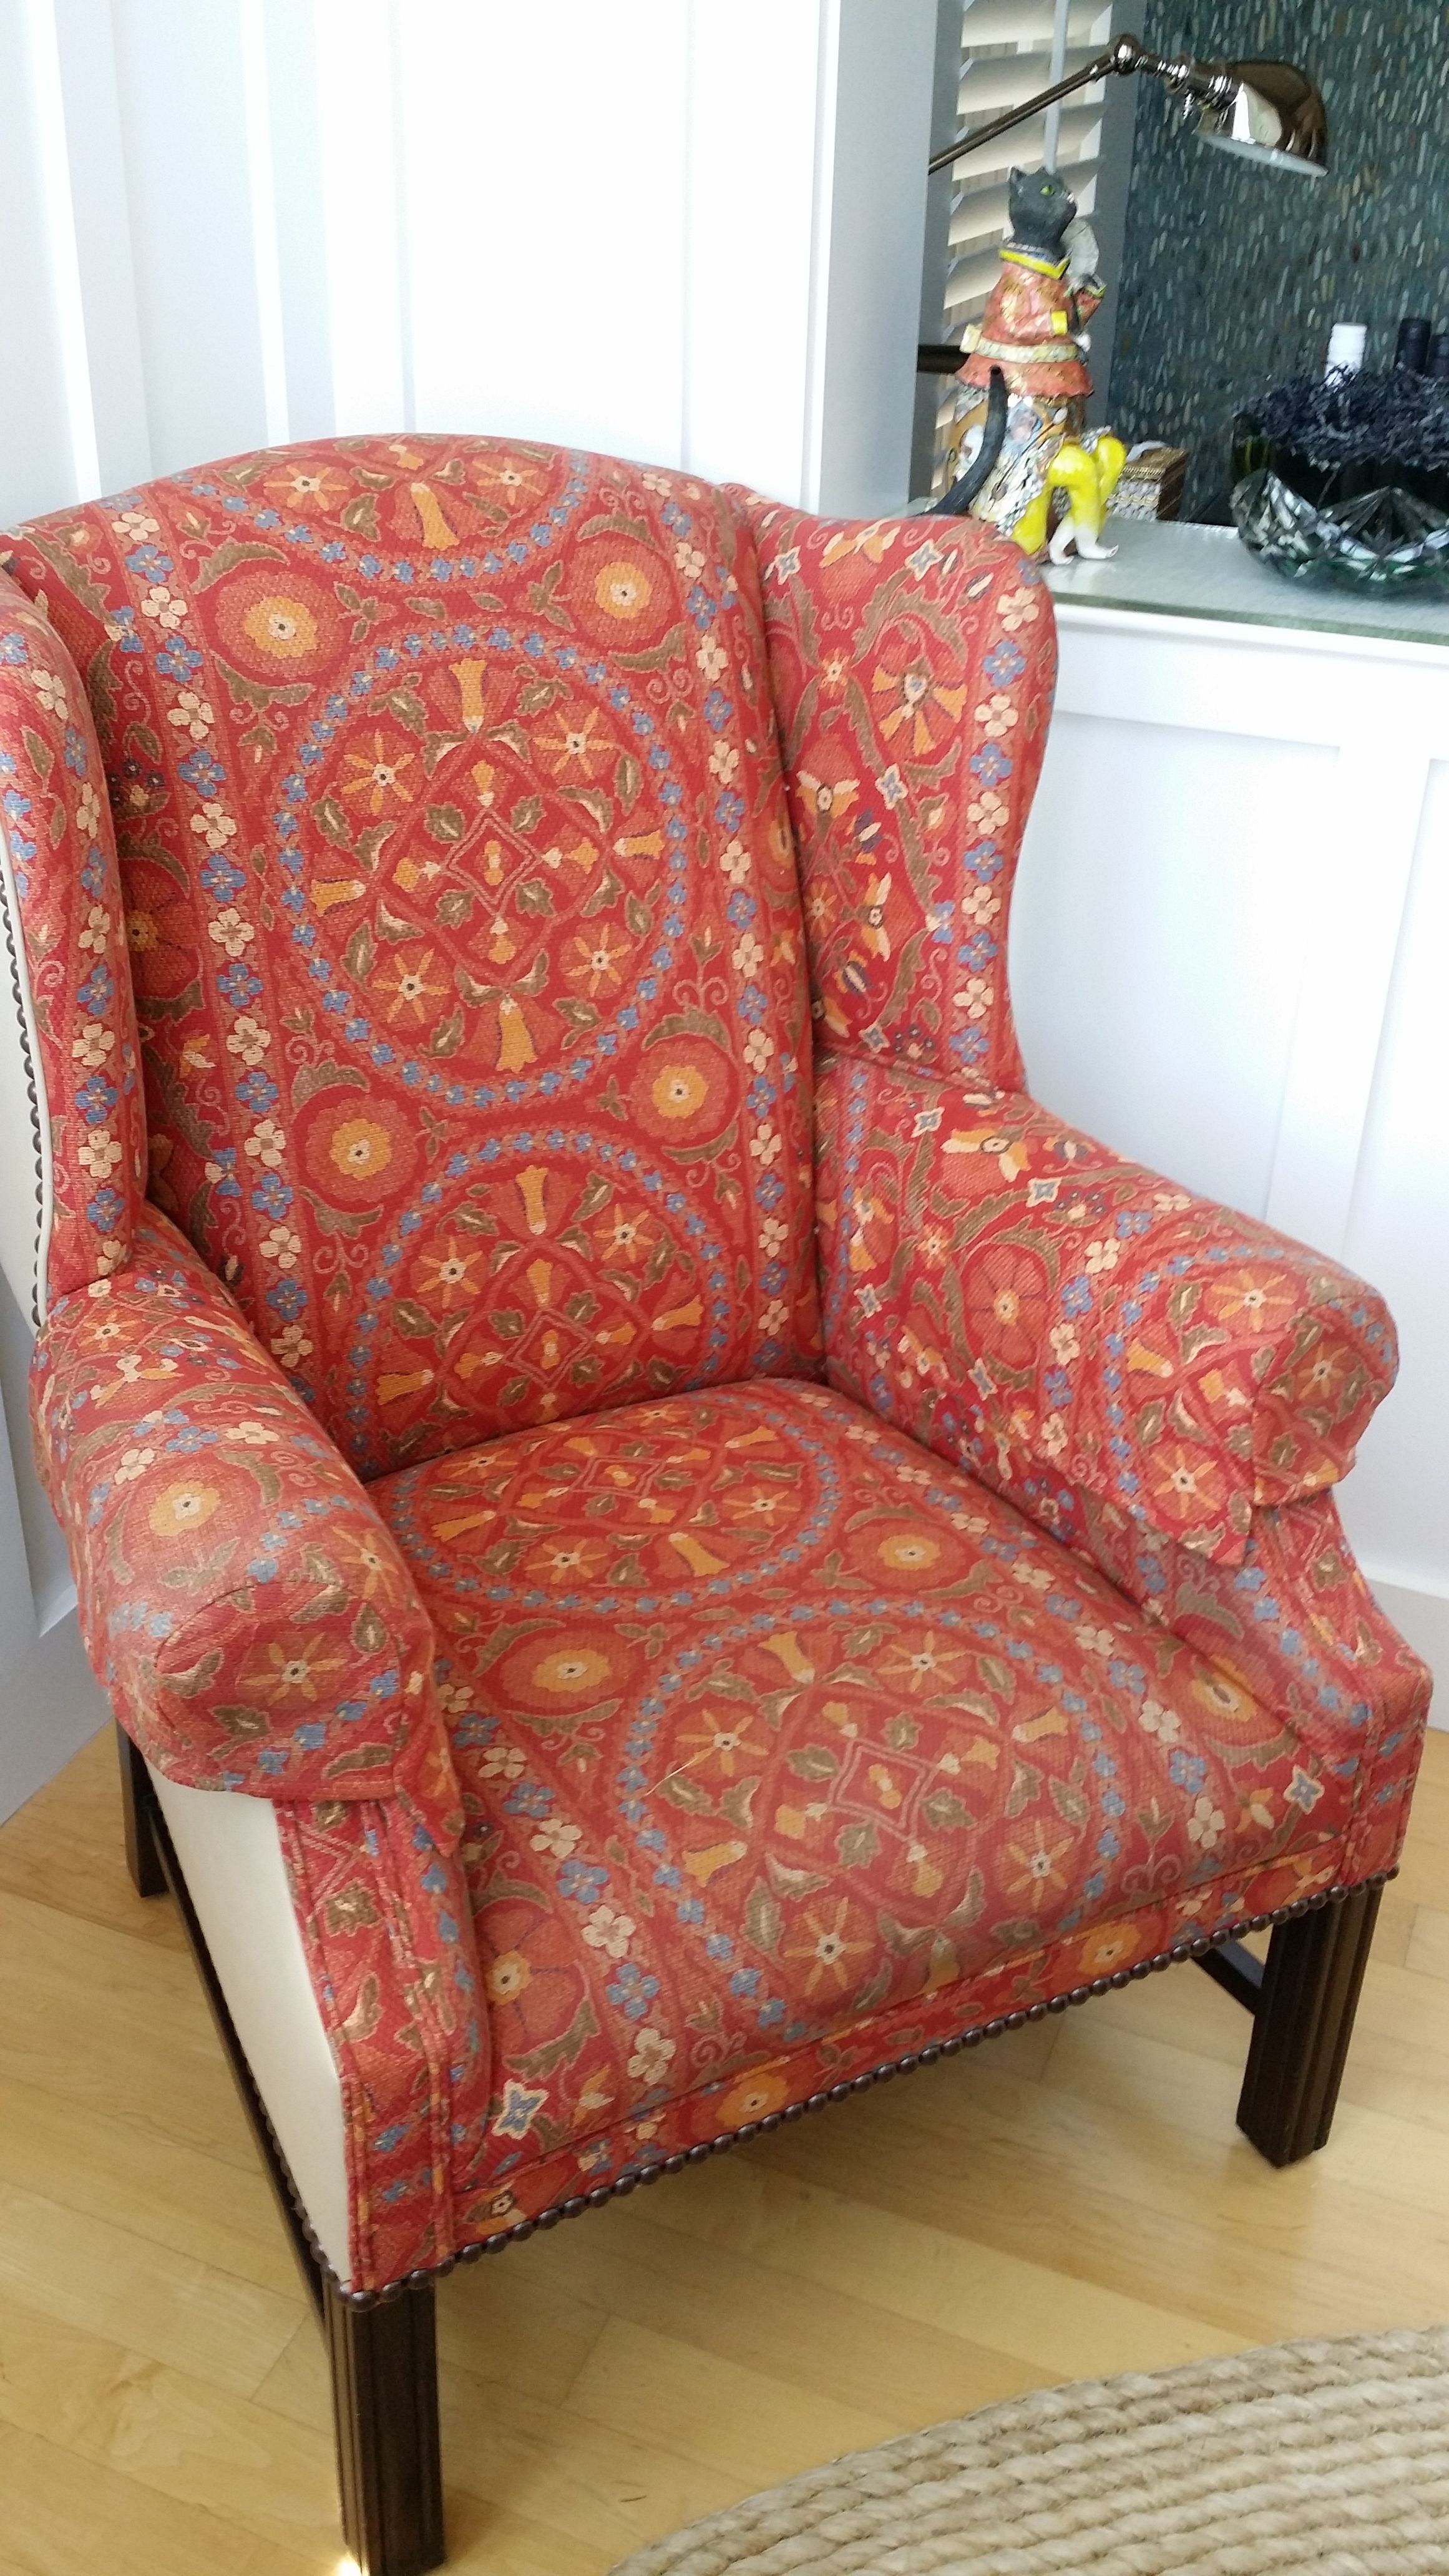 Superieur Coral Upholstered Wing Chair   Image 4 Of 8